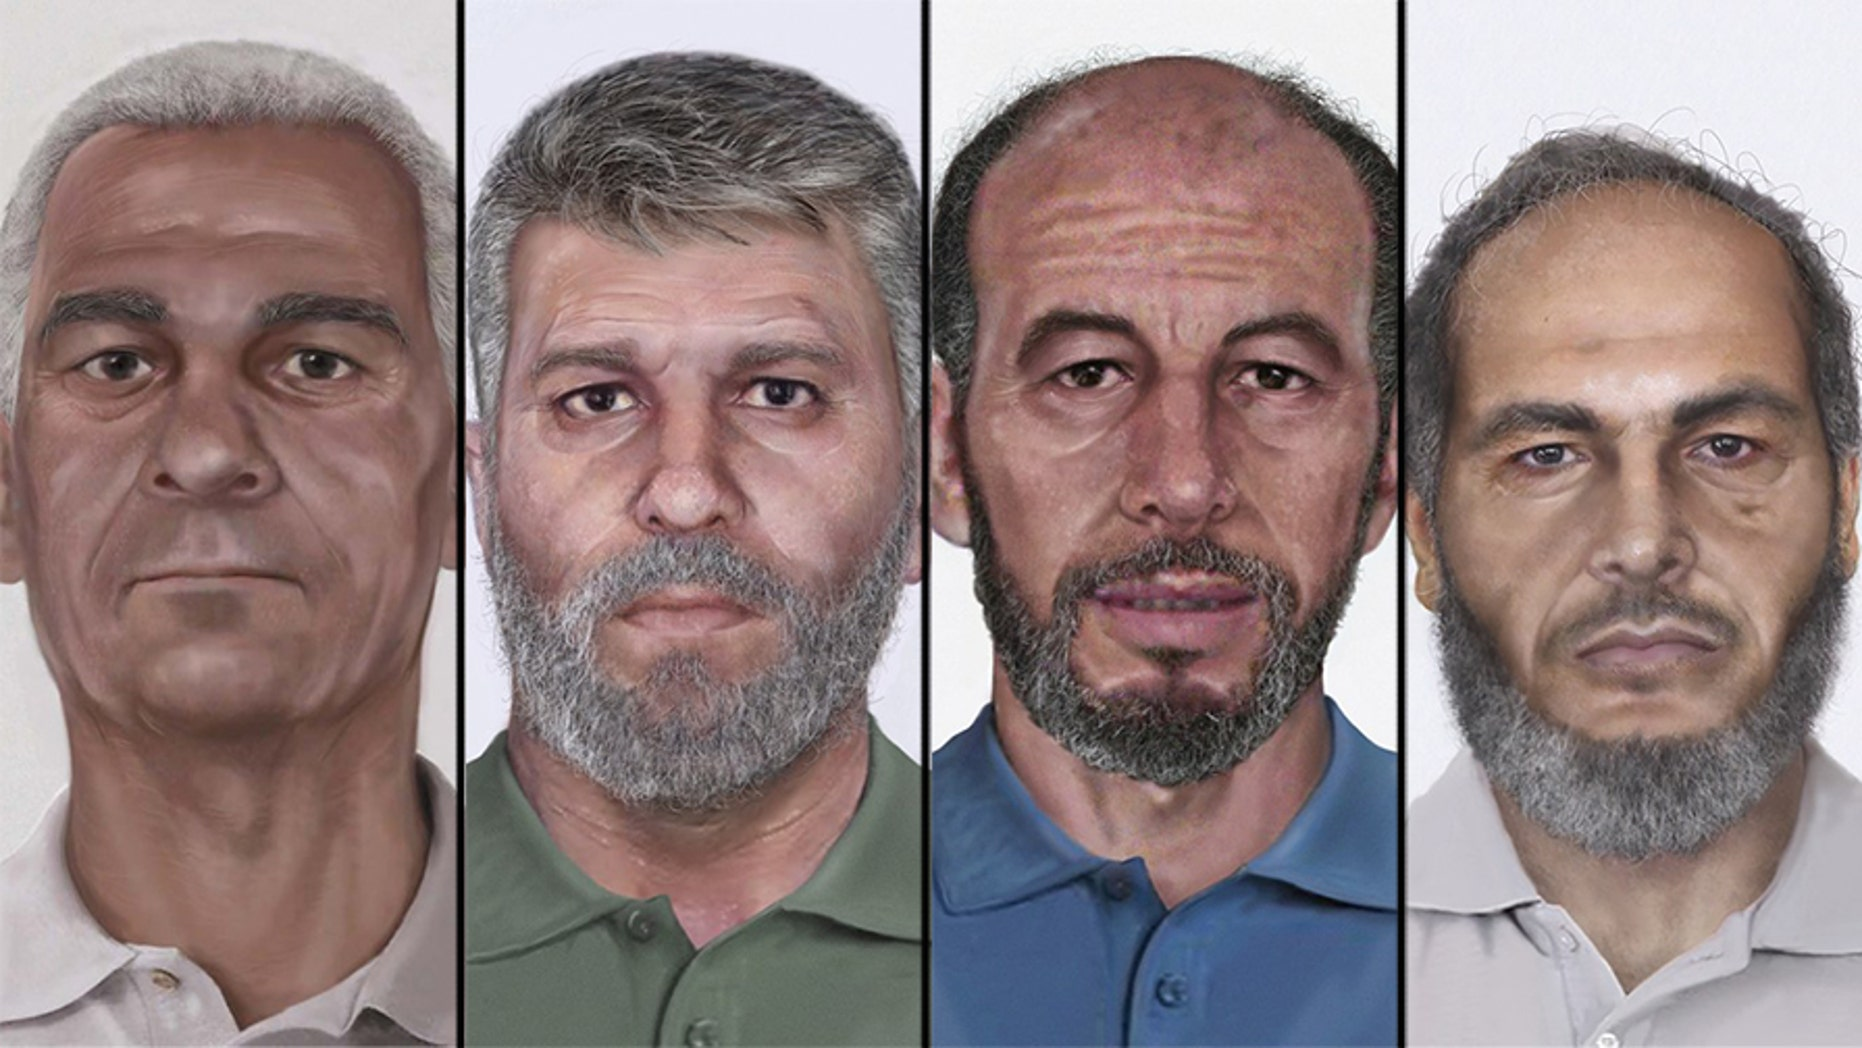 The above photos show the FBI's Pan Am Flight 73 suspects, from left to right, Wadoud Muhammad Hafiz al-Turki, Jamal Saeed Abdul Rahim, Muhammad Ahmed al-Munawar and Muhammad Abdullah Khalil Hussain ar-Rahayyal.